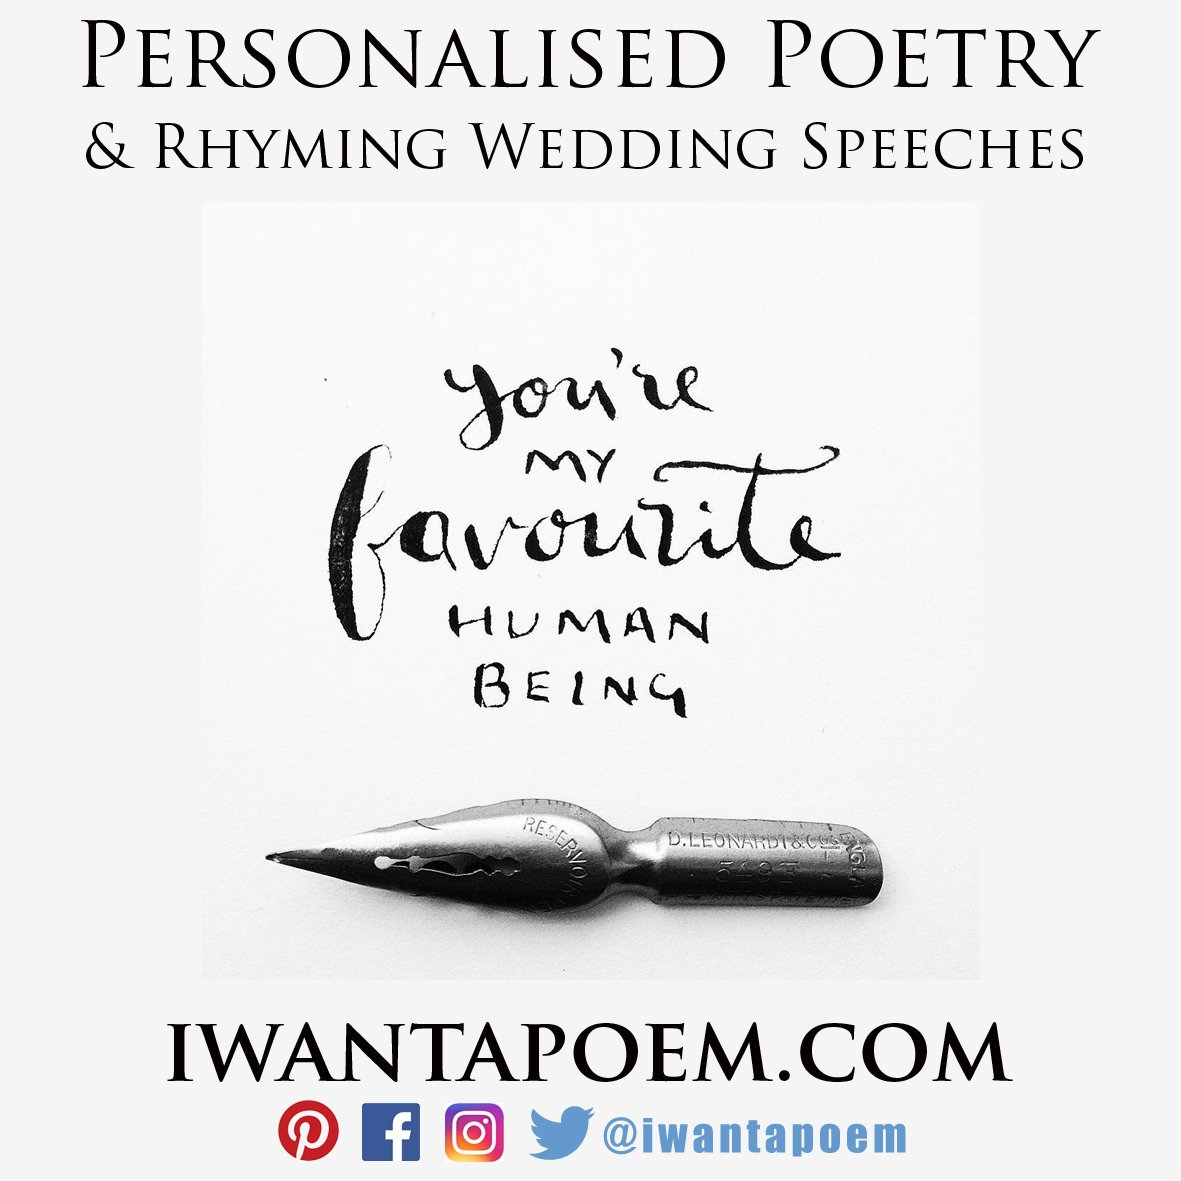 custom poetry and personalized poems - iwantapoem.com